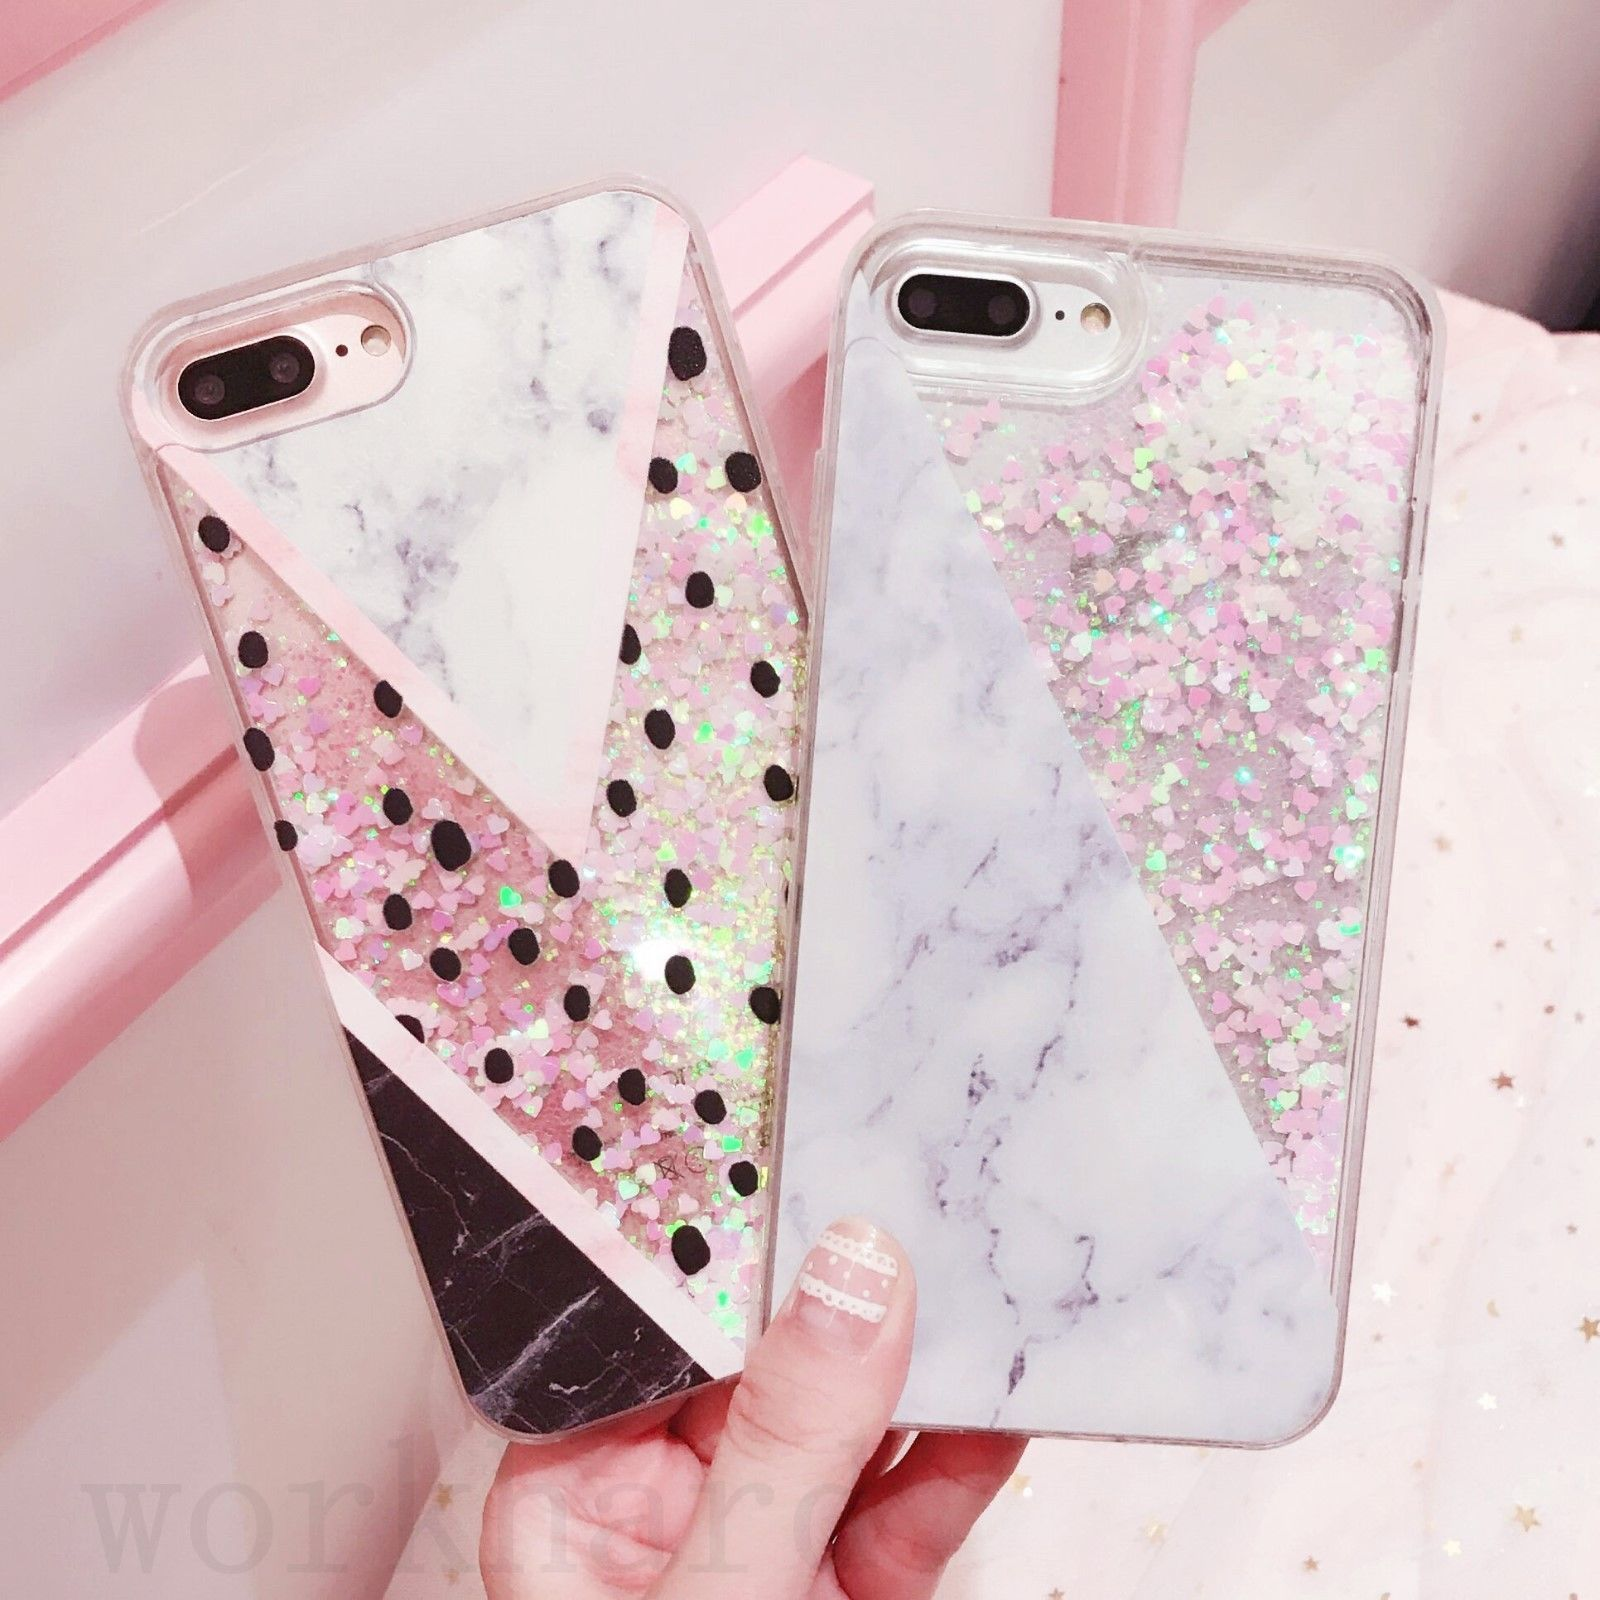 low priced ed609 f8546 Details about Granite Marble Bling Glitter Liquid Dynamic Case Cover ...